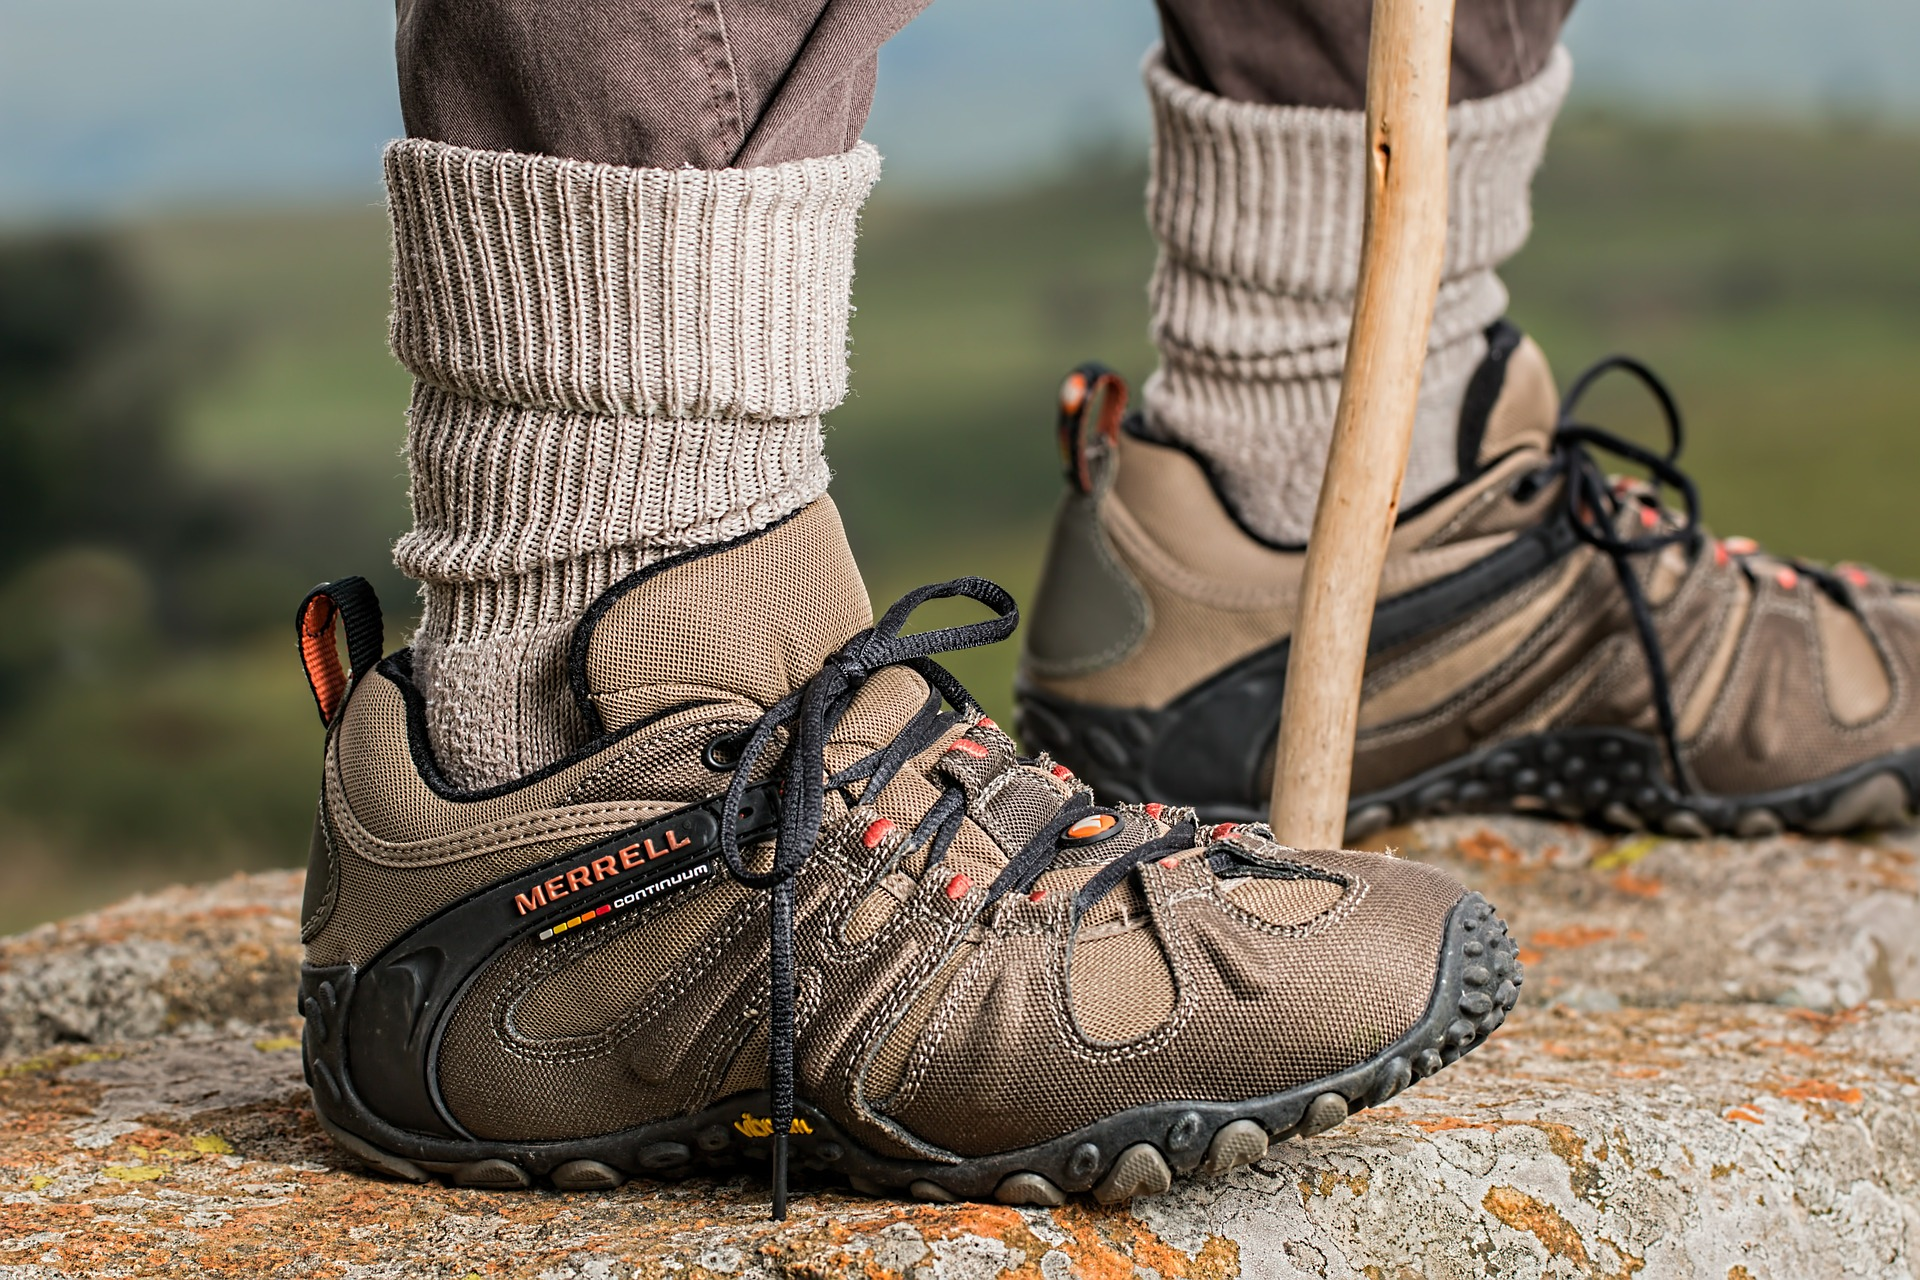 Hiking shoes, trekking shoes, boots, walking shoes, hiking, trekking trail, mountaineering, hitchhiking, travel, outdoor, adventure, nature, explore